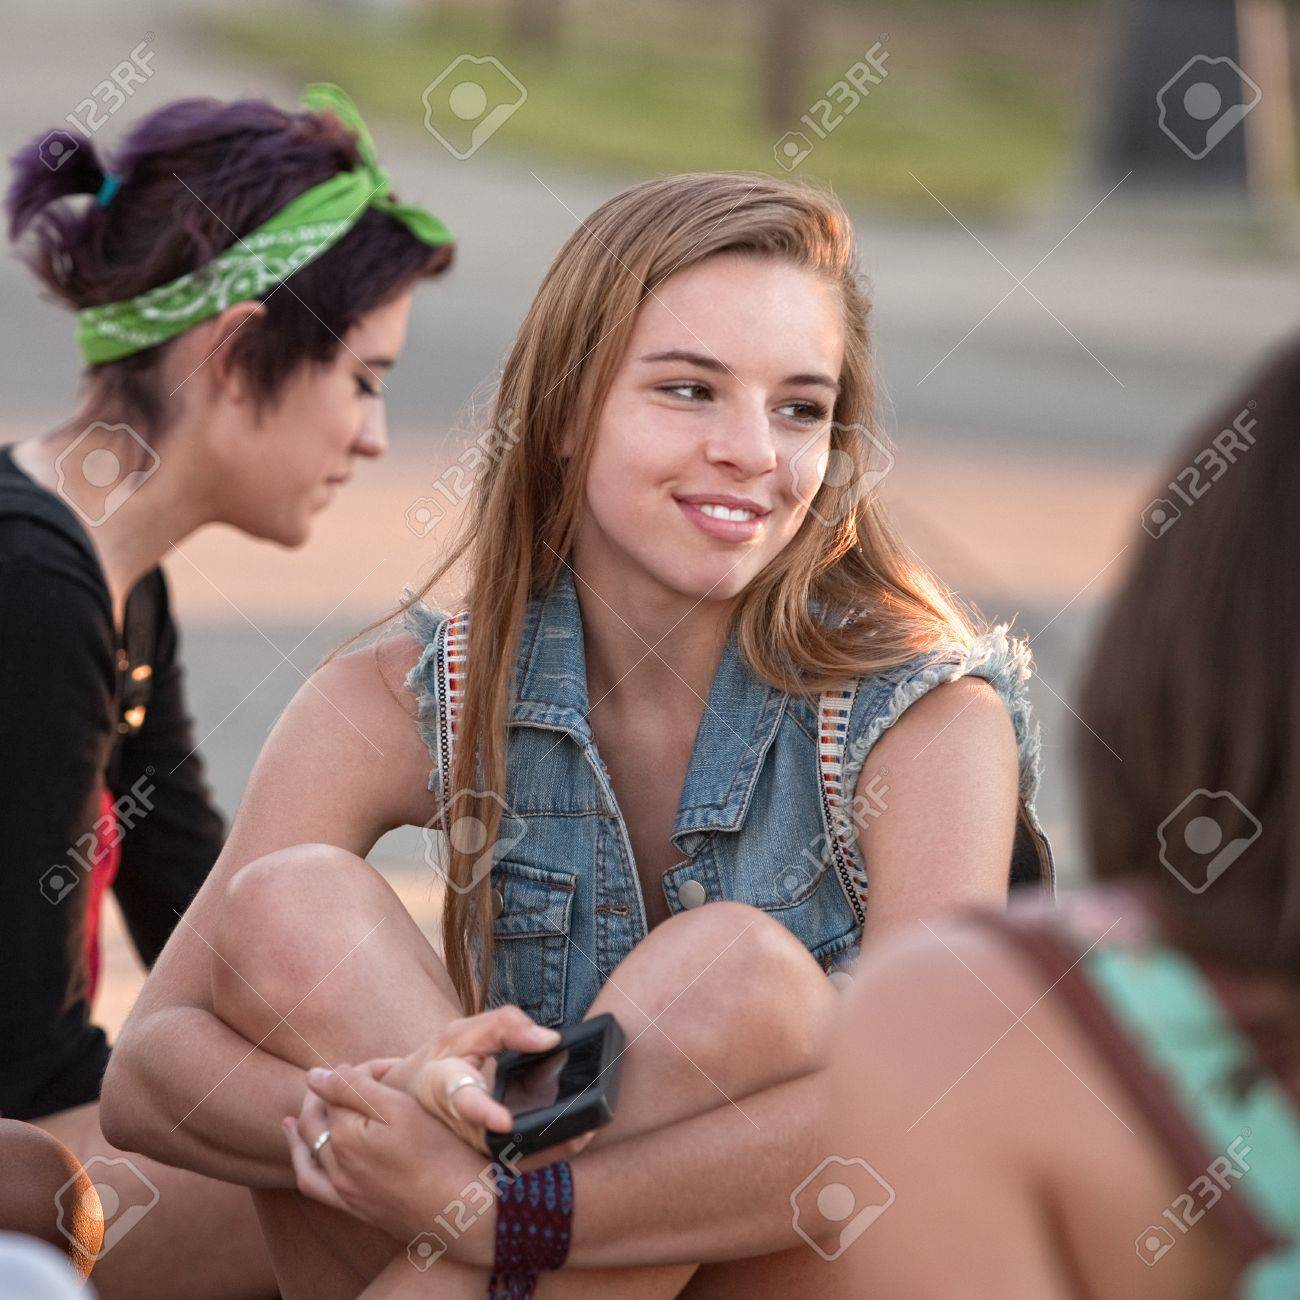 Pretty young teenage girl holding phone and smiling Stock Photo - 15433175